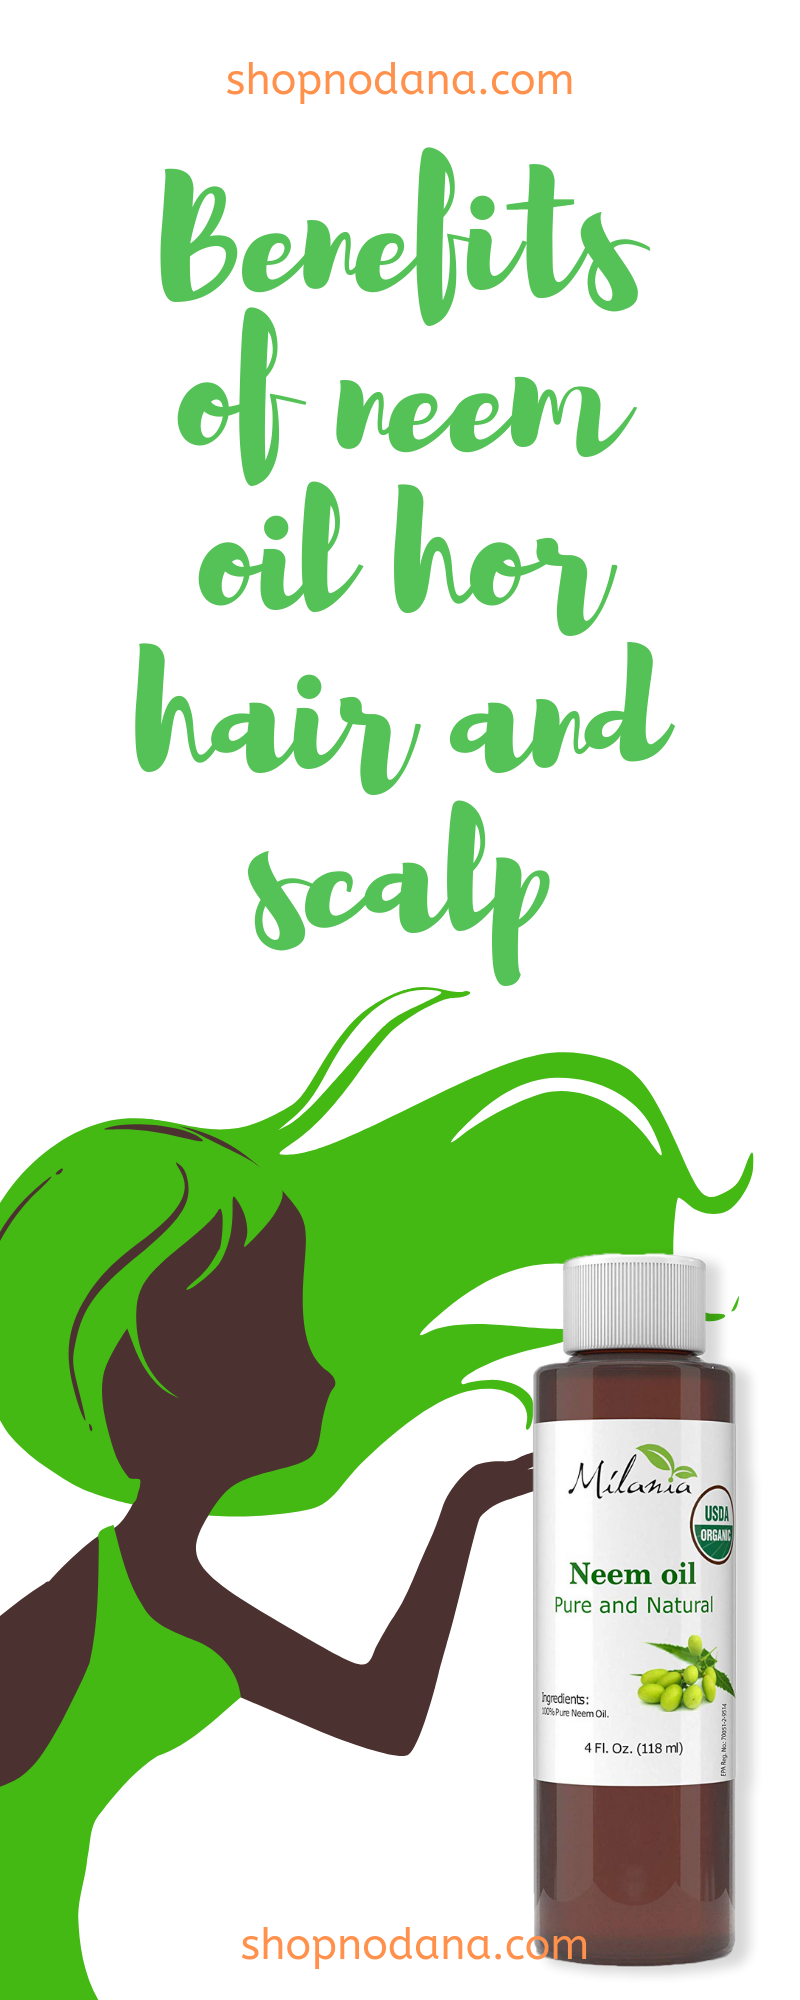 Benefits of neem oil for hair-shopnodana